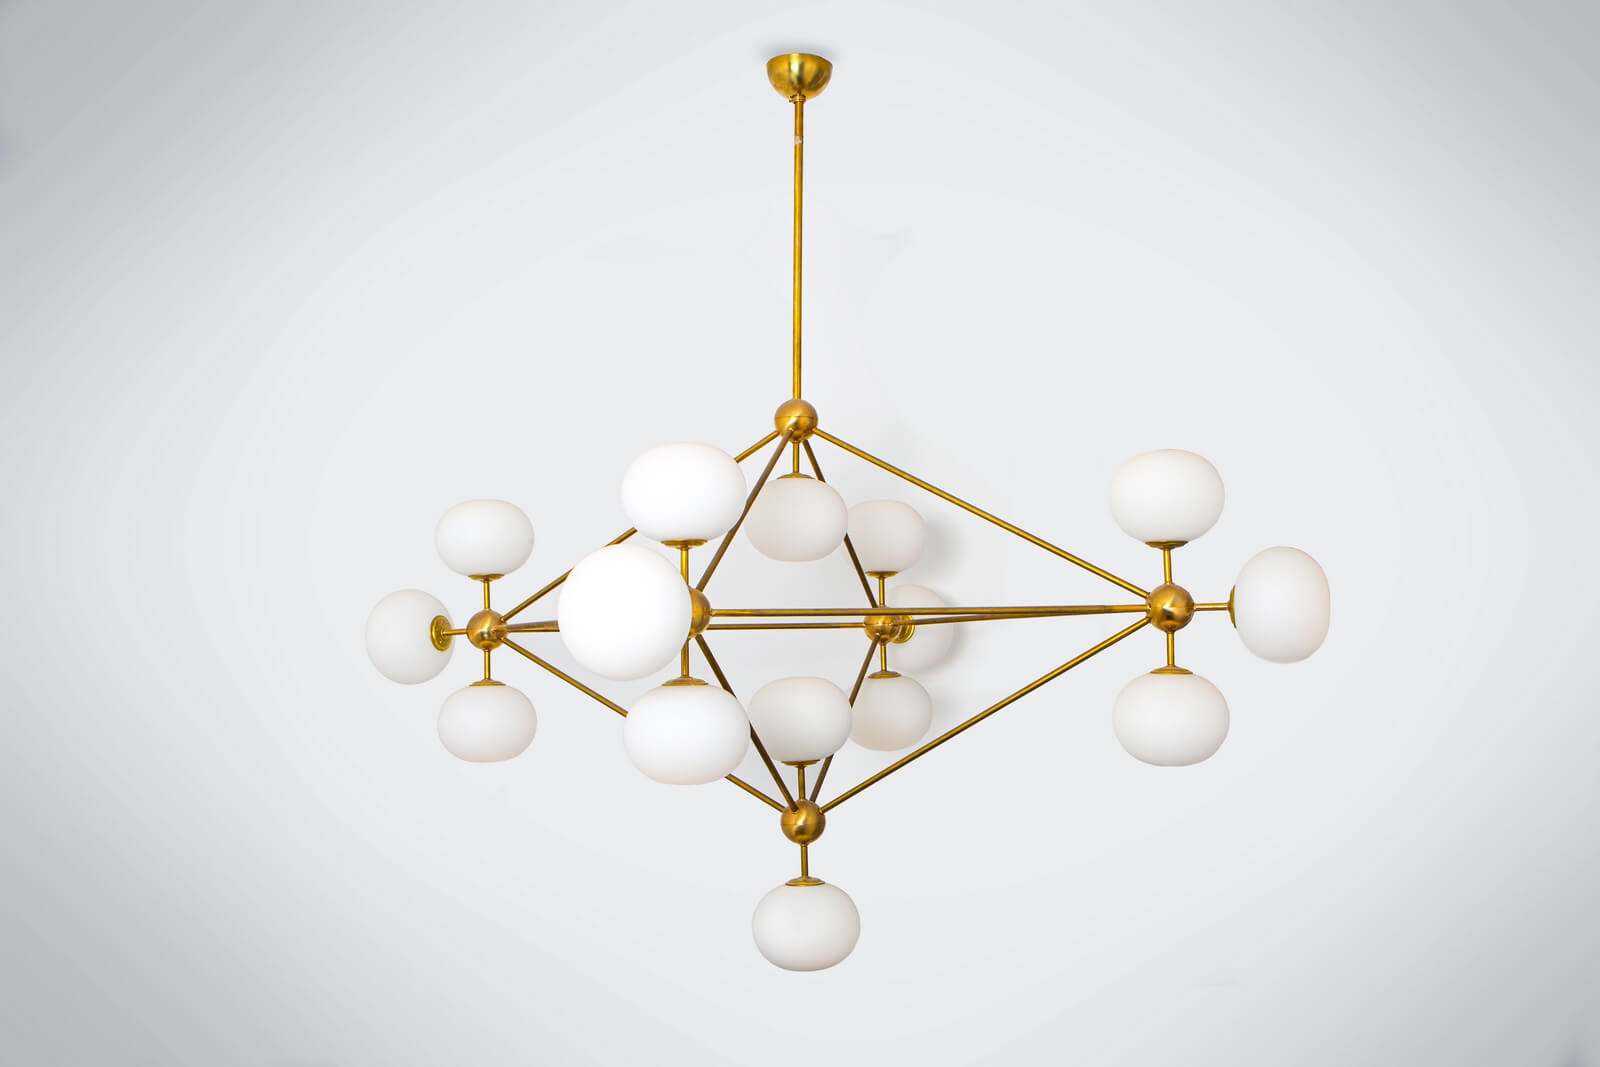 Ceiling lamp by G.M.C.E. for sale